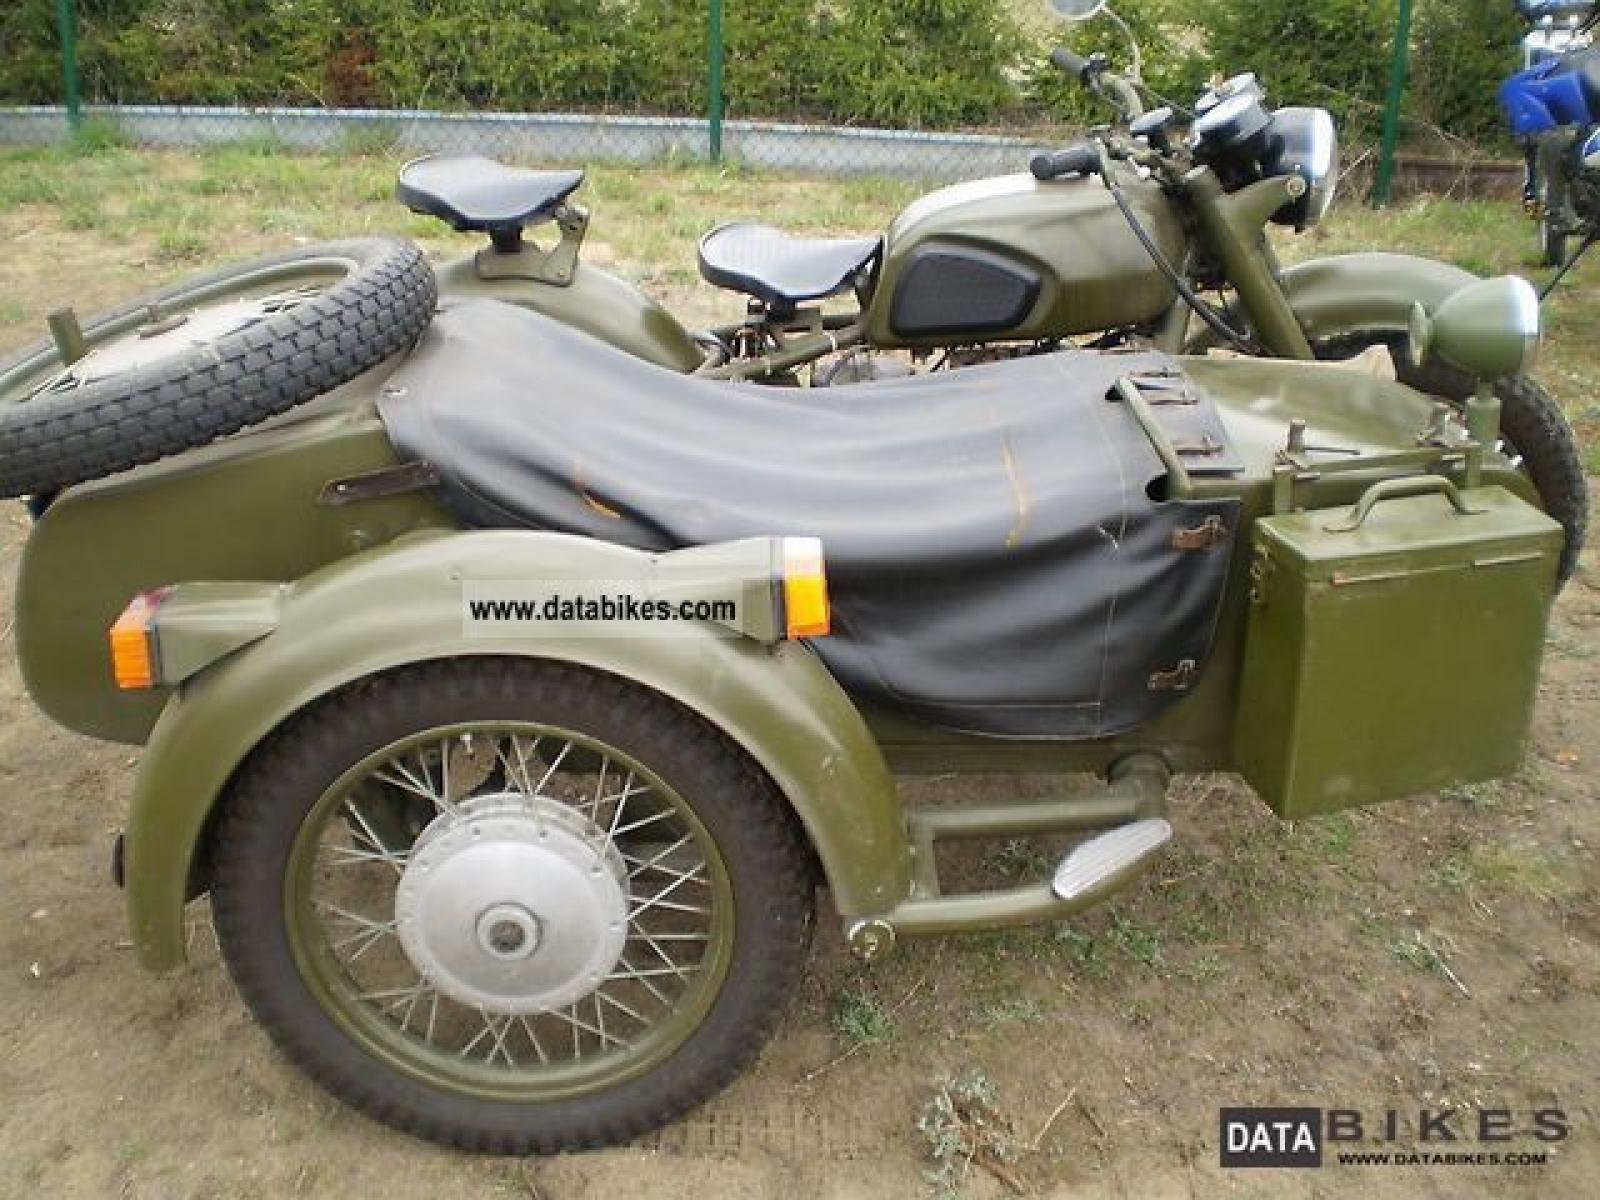 Dnepr MT 11 with sidecar 1991 images #70440